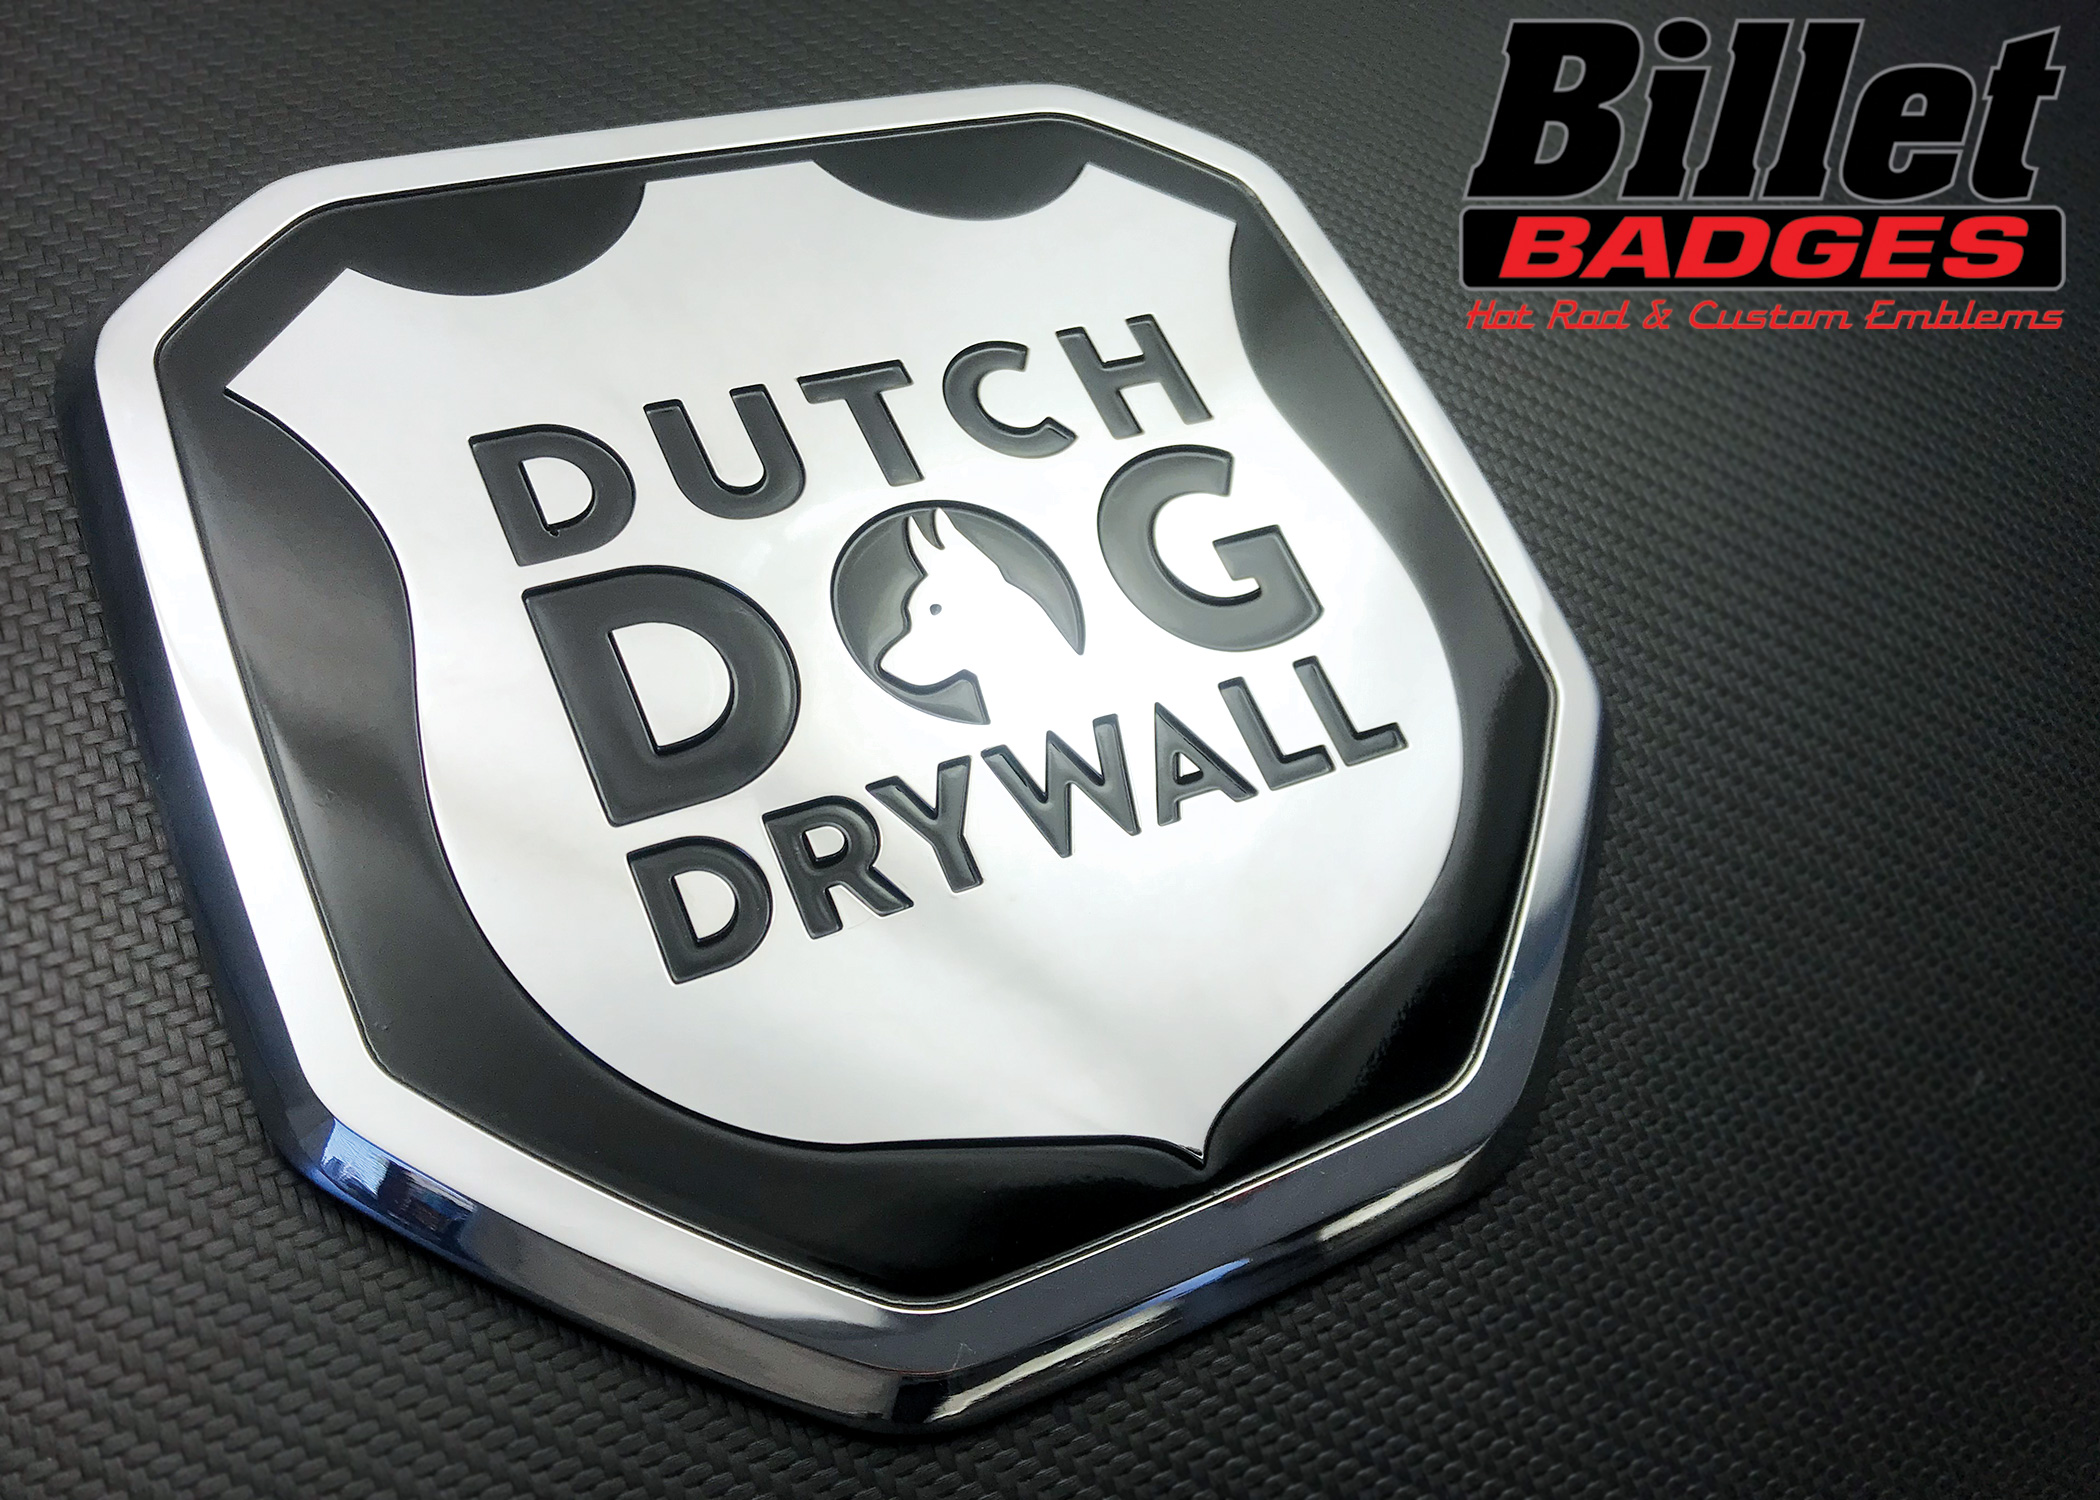 dutch_dog_ram_shield.jpg